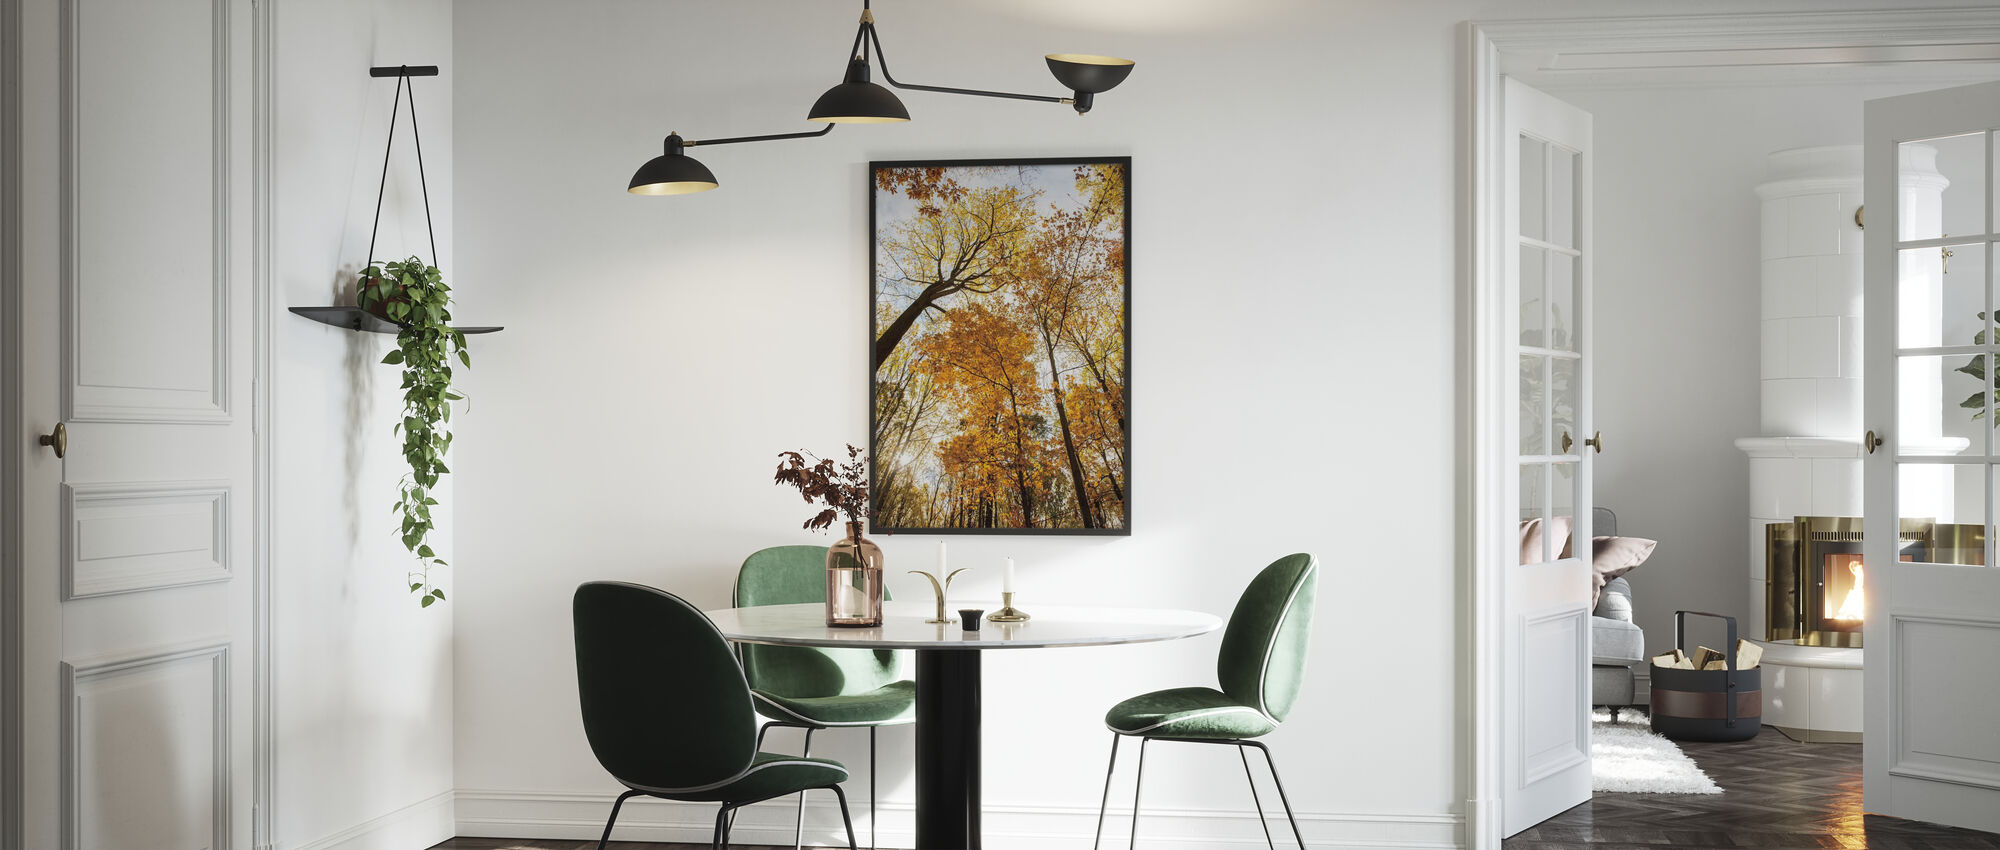 Towering Trees II - Framed print - Kitchen